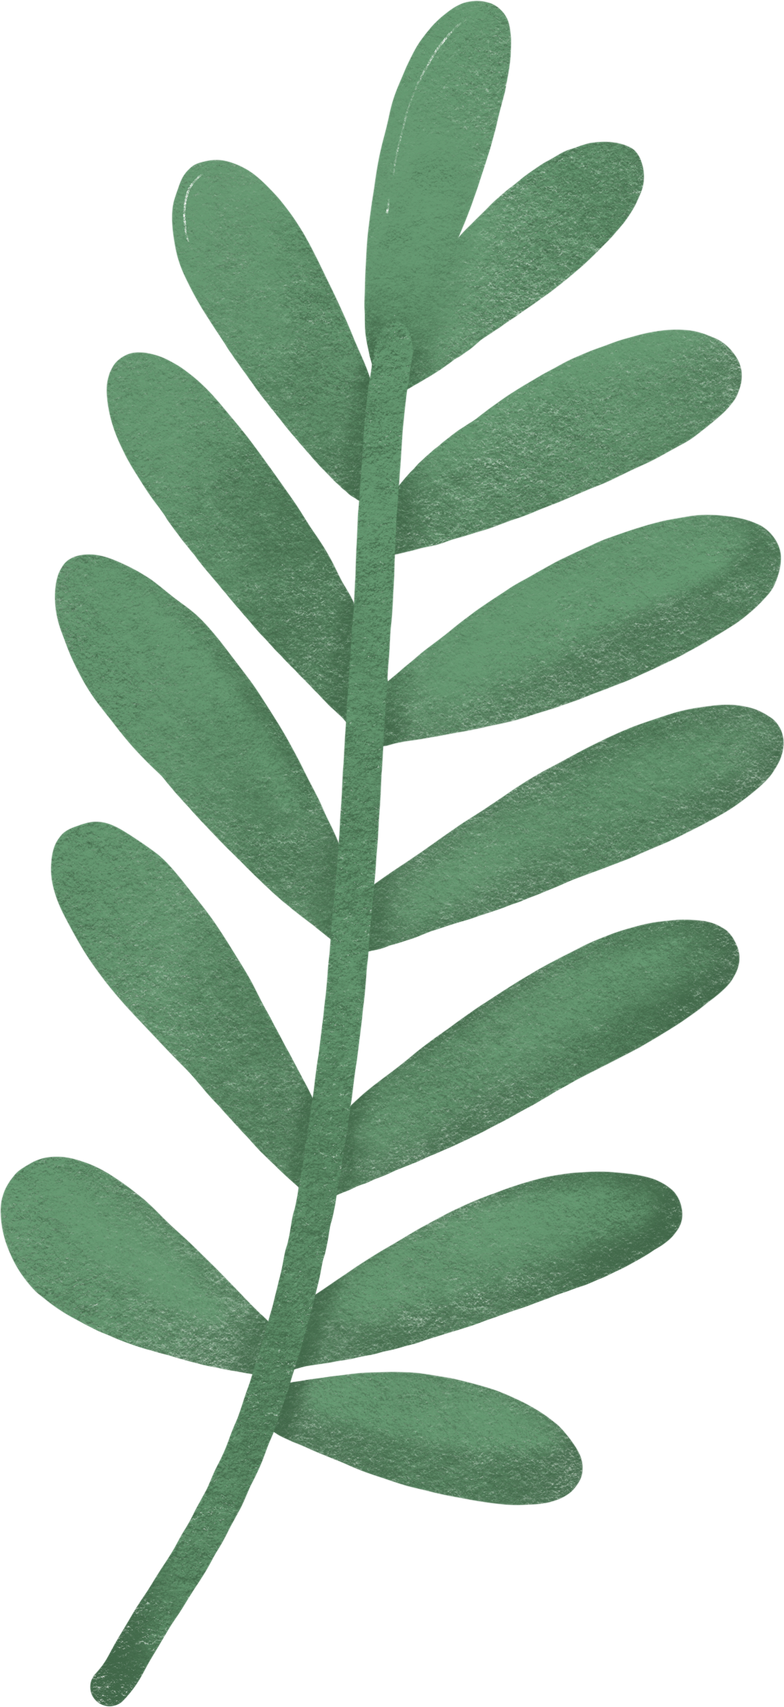 style palm leaf Vector images in PNG and SVG | Icons8 Illustrations